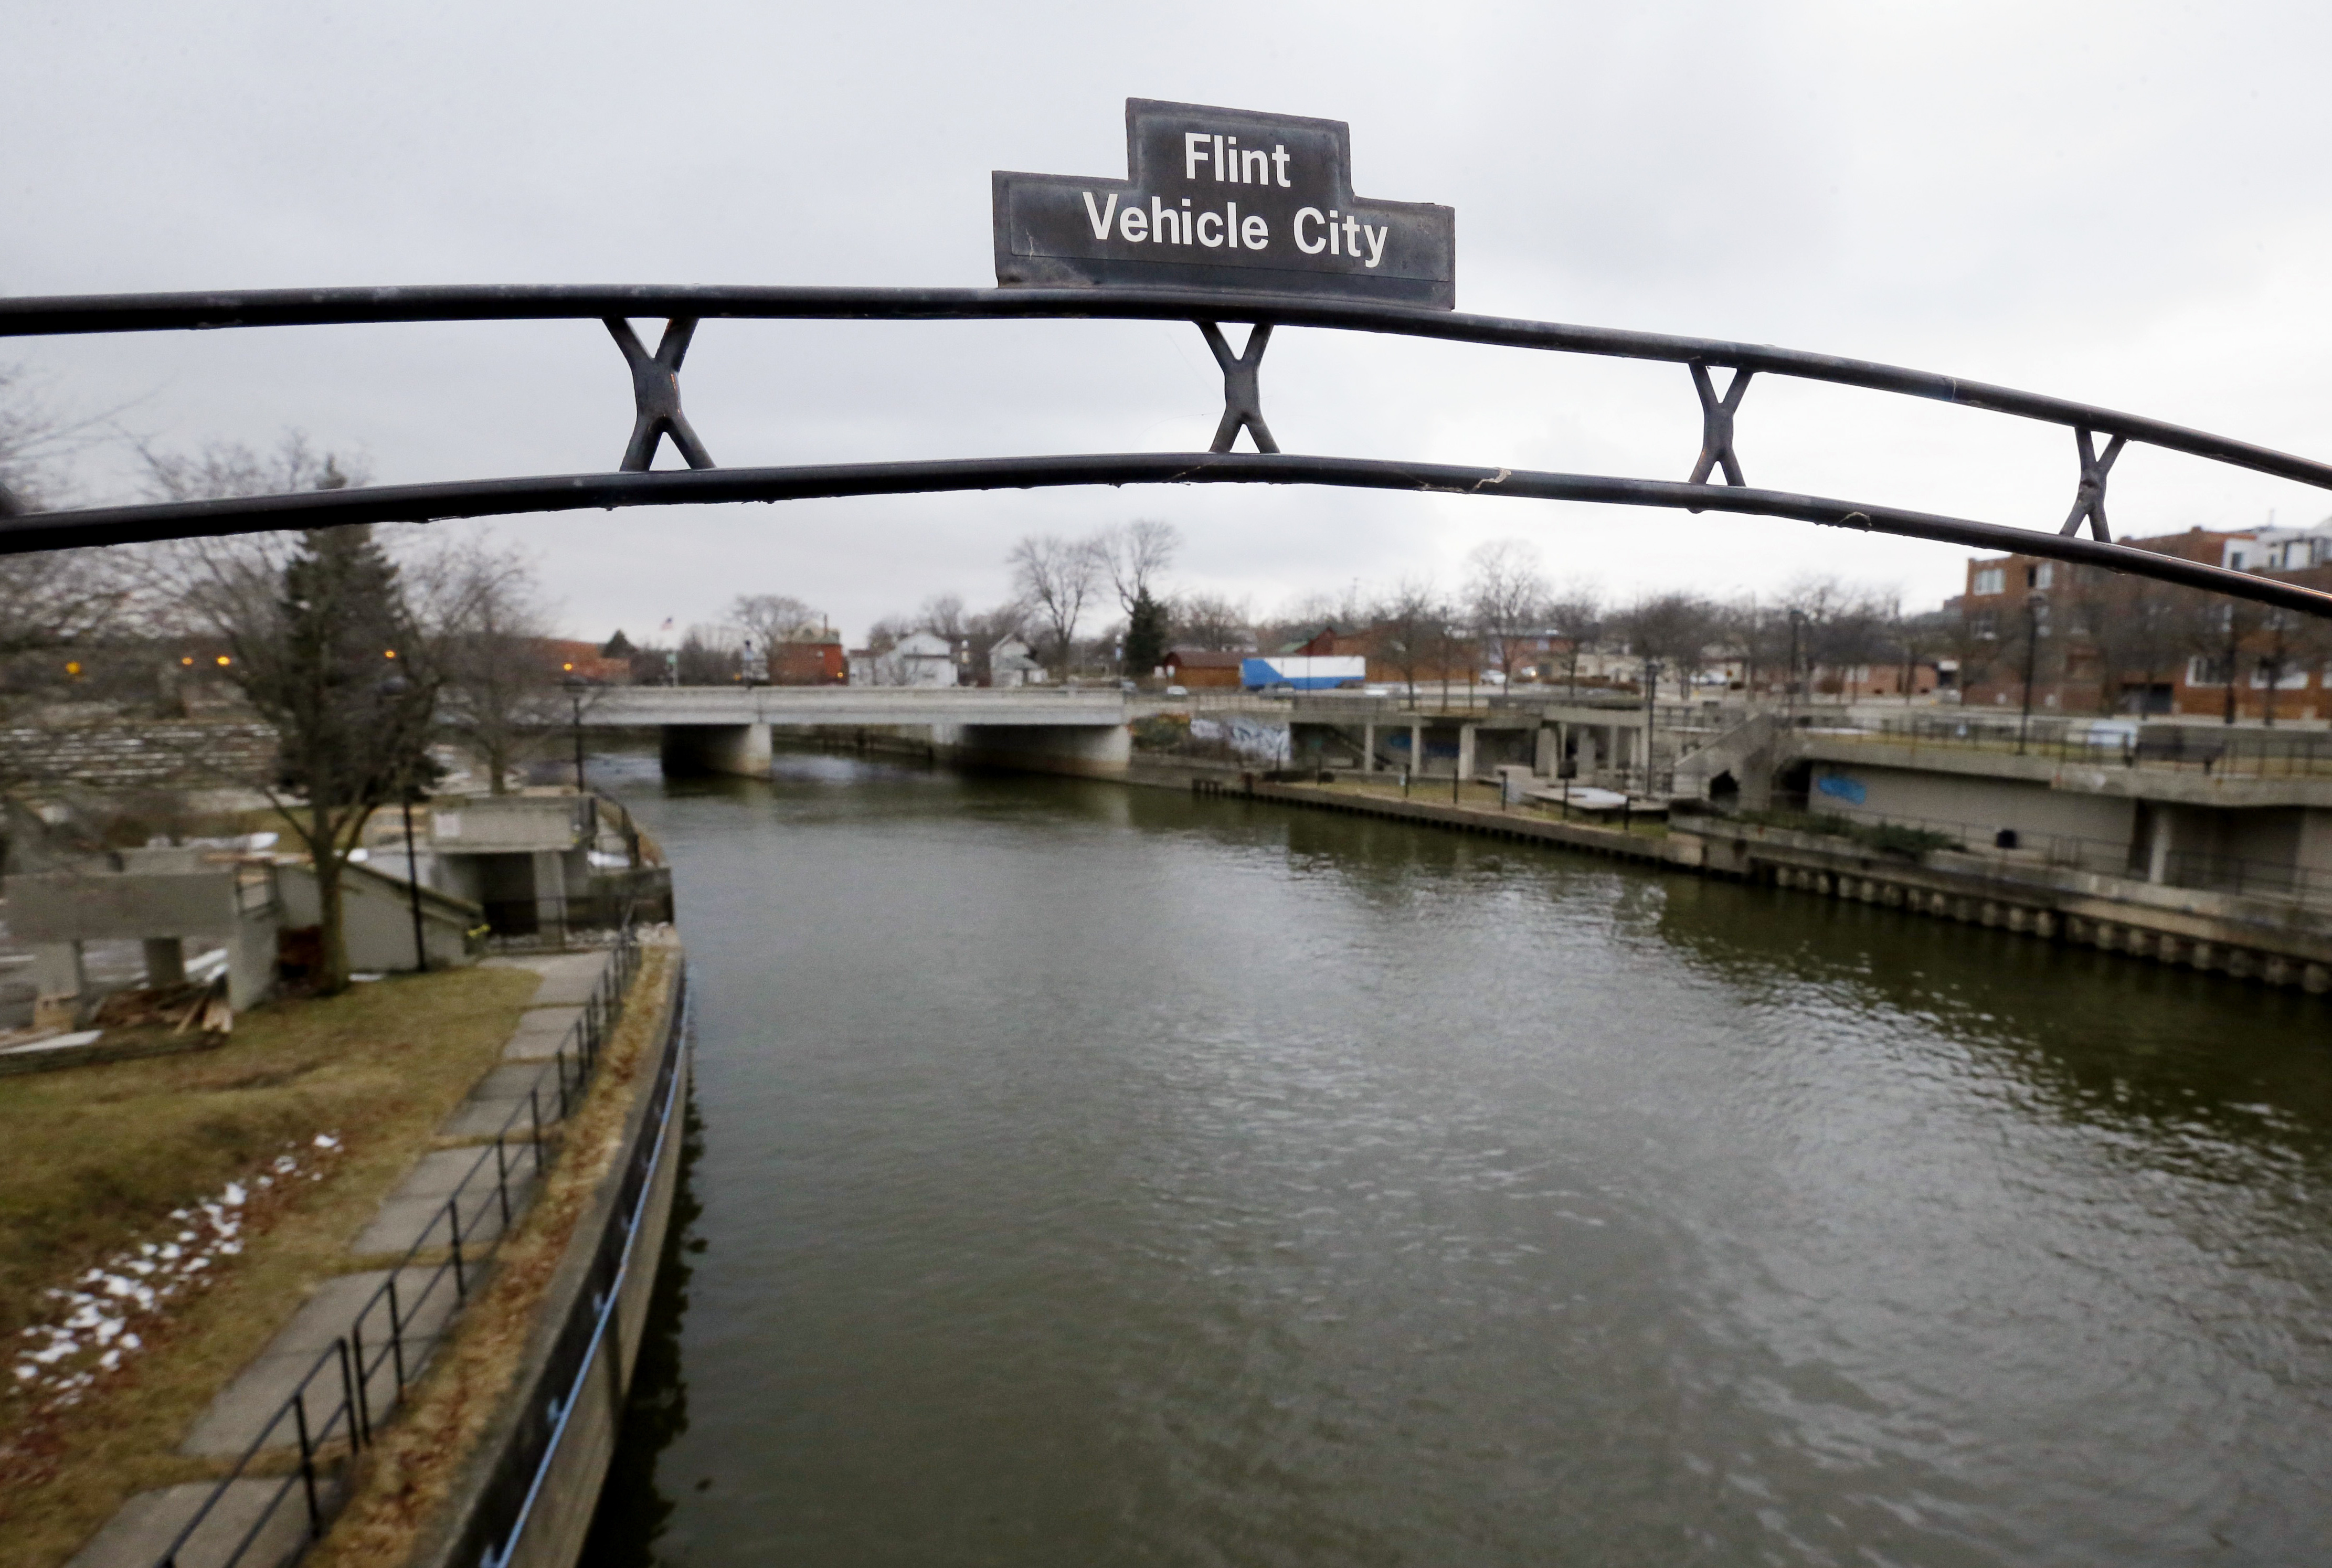 A sign over the Flint River in Flint, Mich. in January 2016. Carlos Osorio/AP